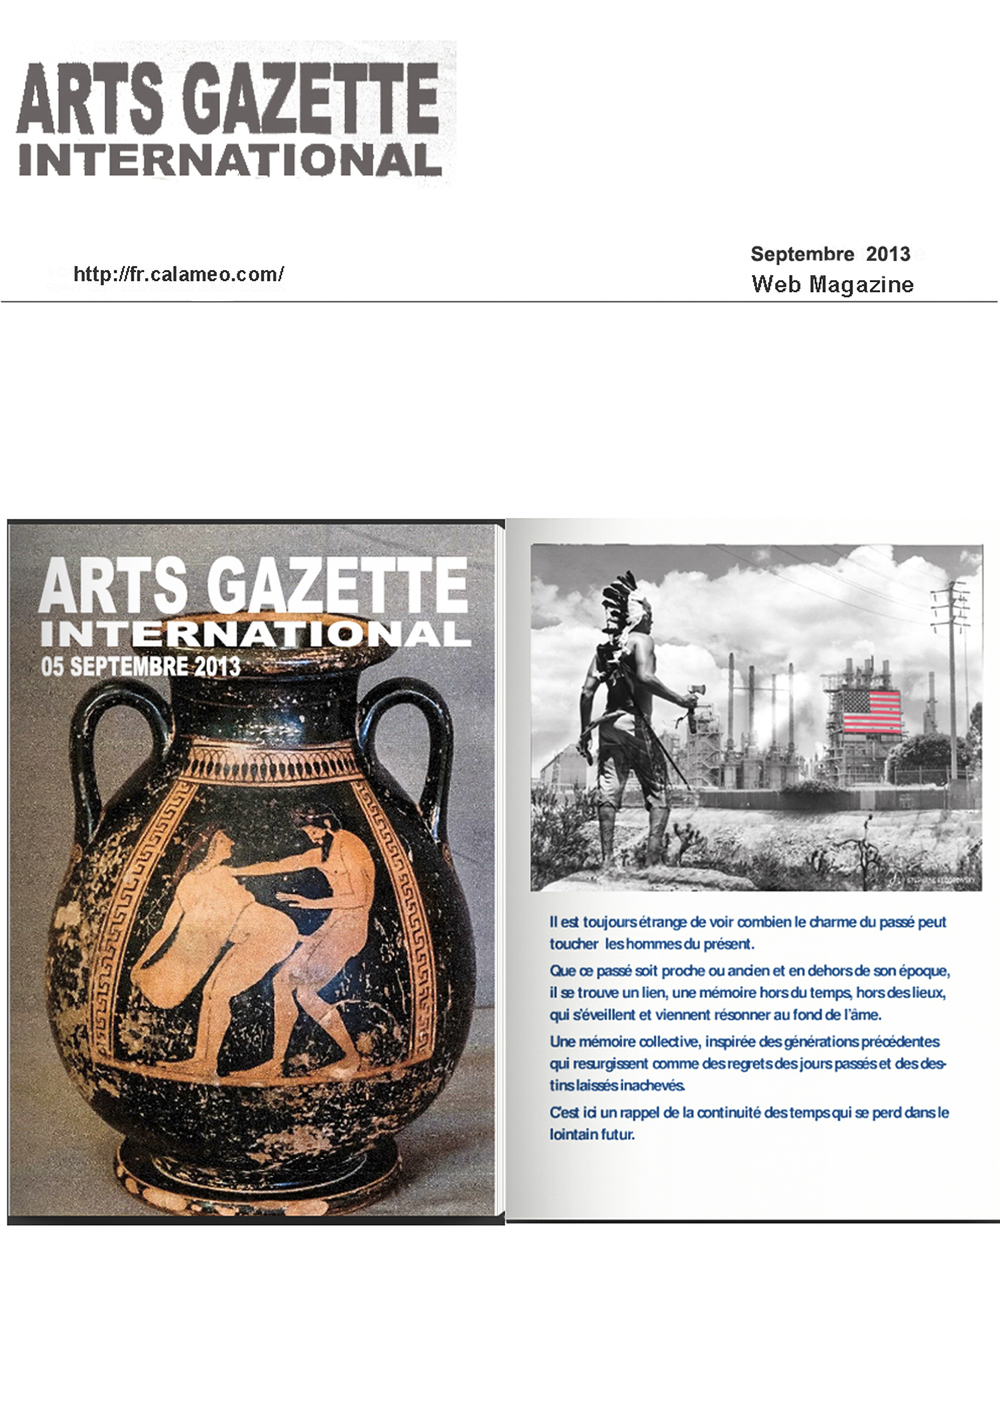 2013-09-08-arts gazette.jpg